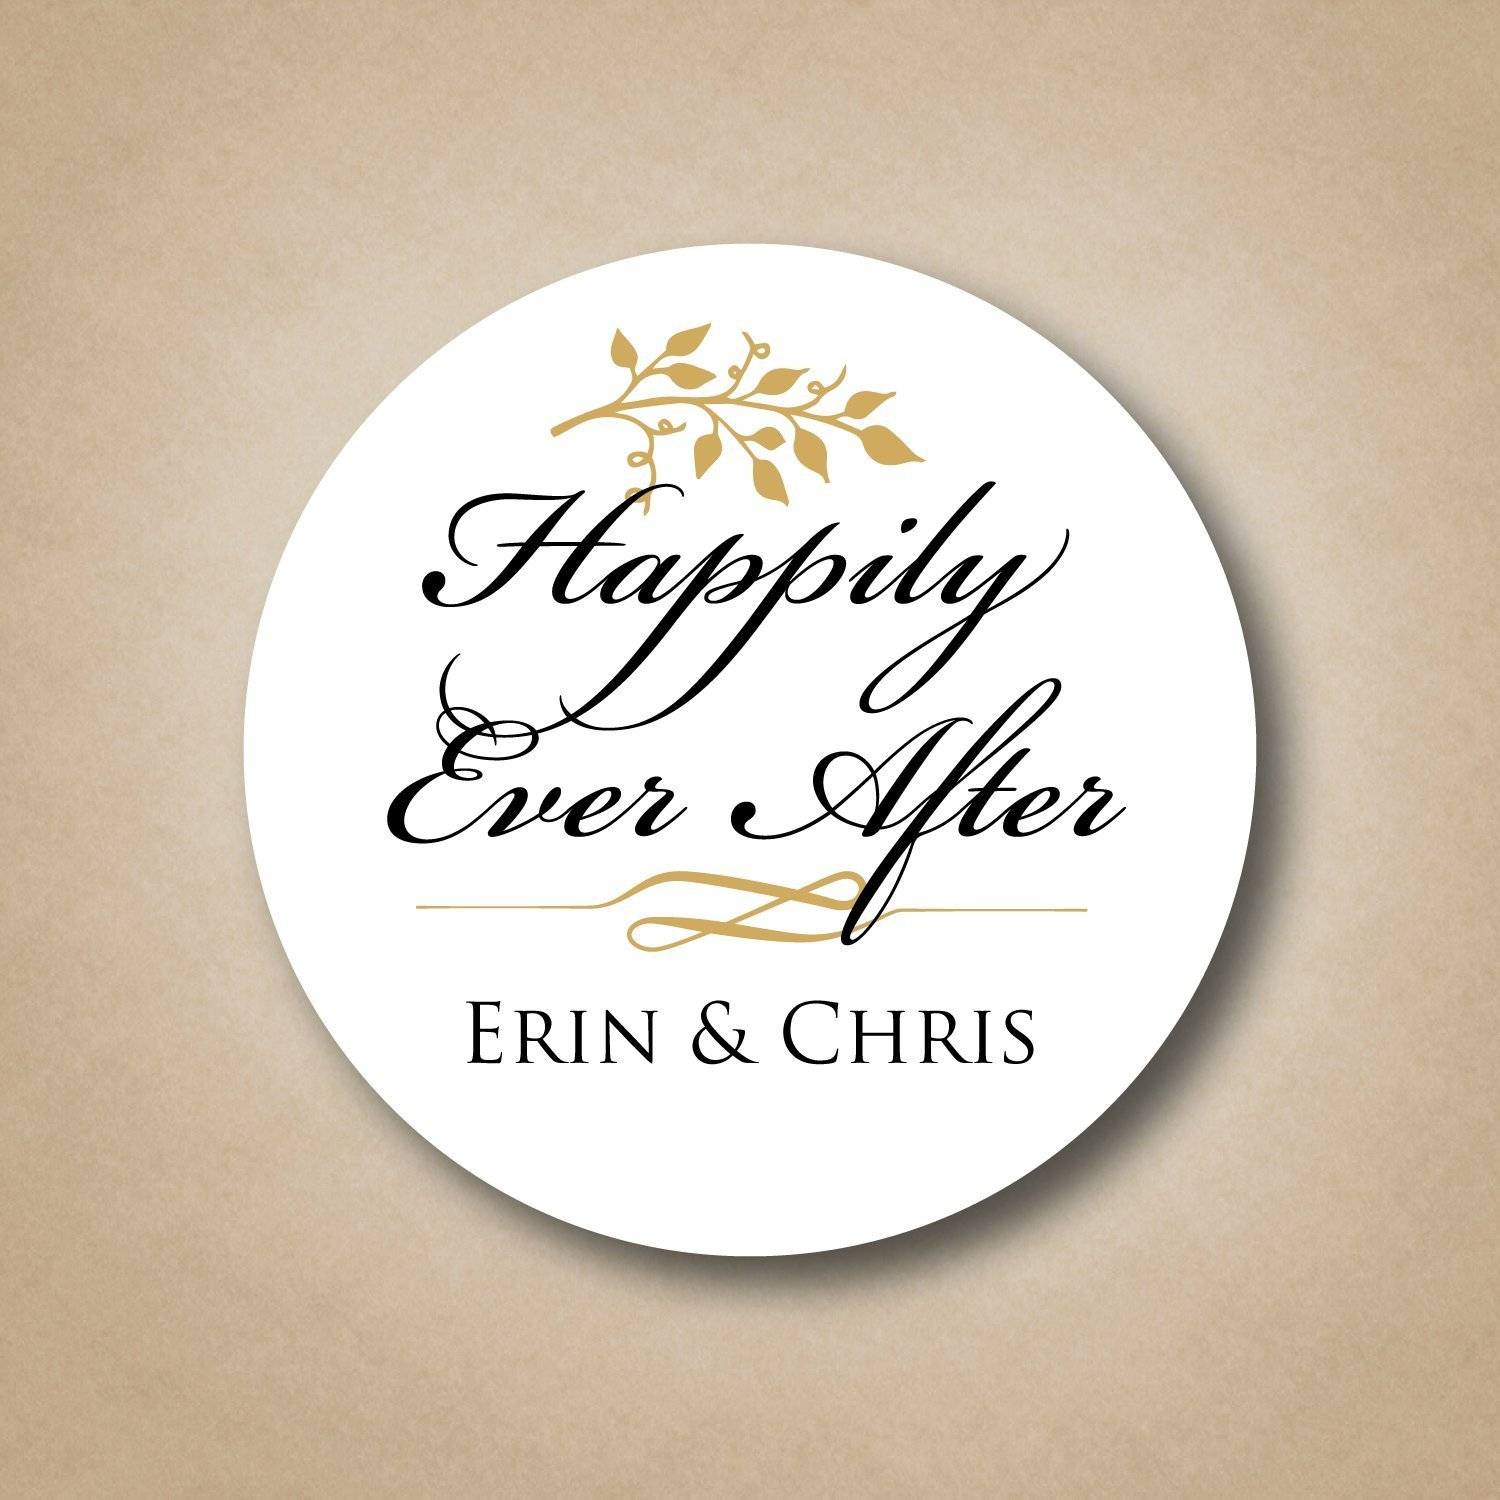 Amazon.com: Happily Ever After Wedding Stickers: Handmade